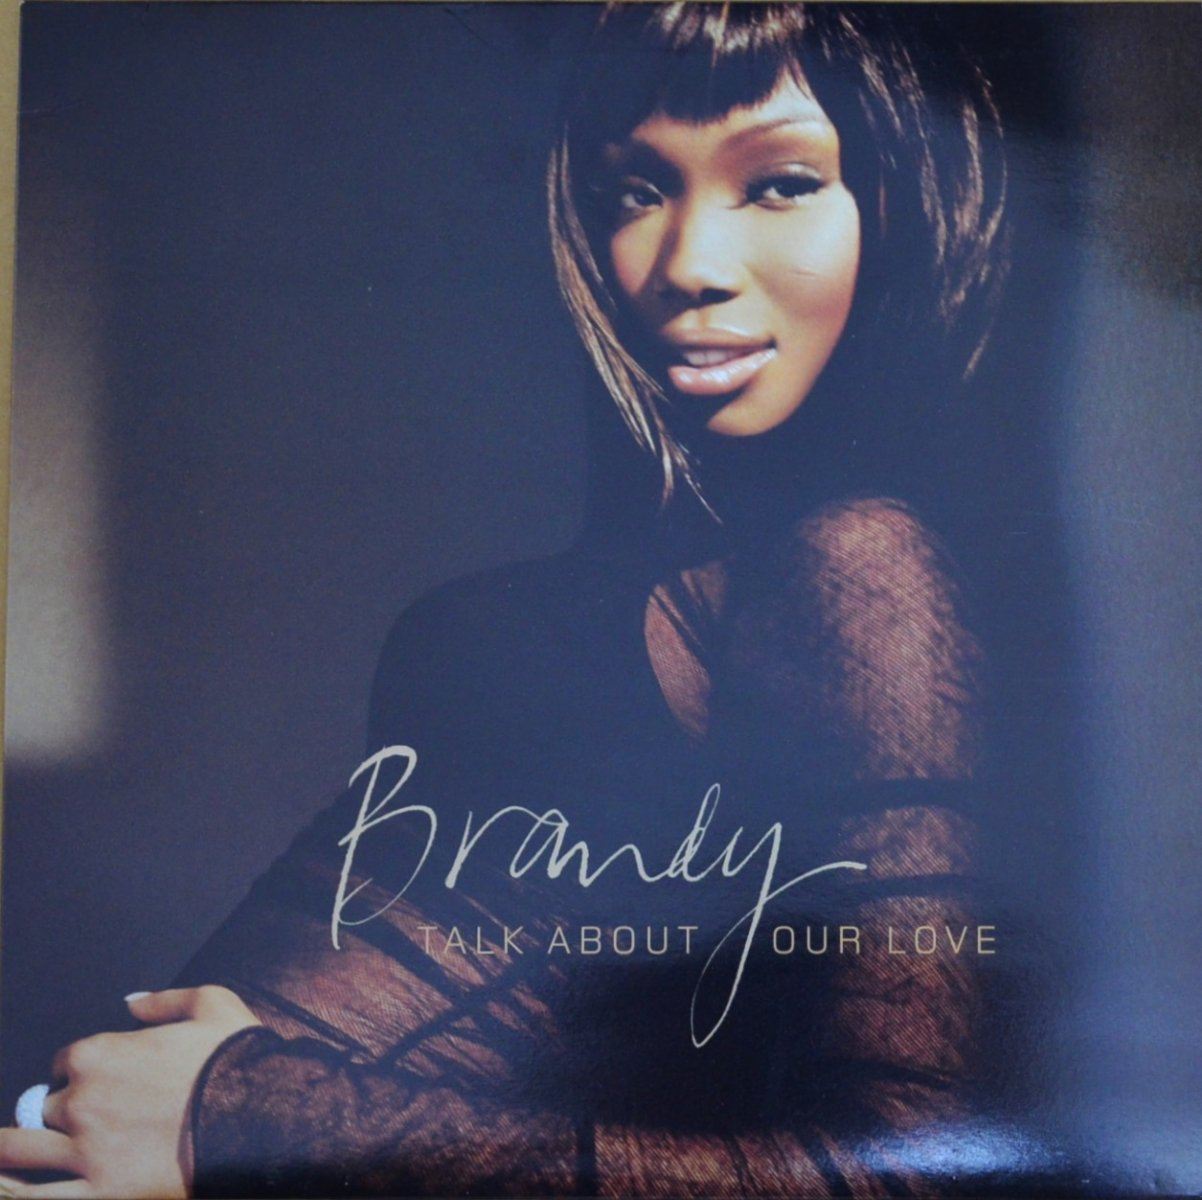 BRANDY / TALK ABOUT OUR LOVE (12